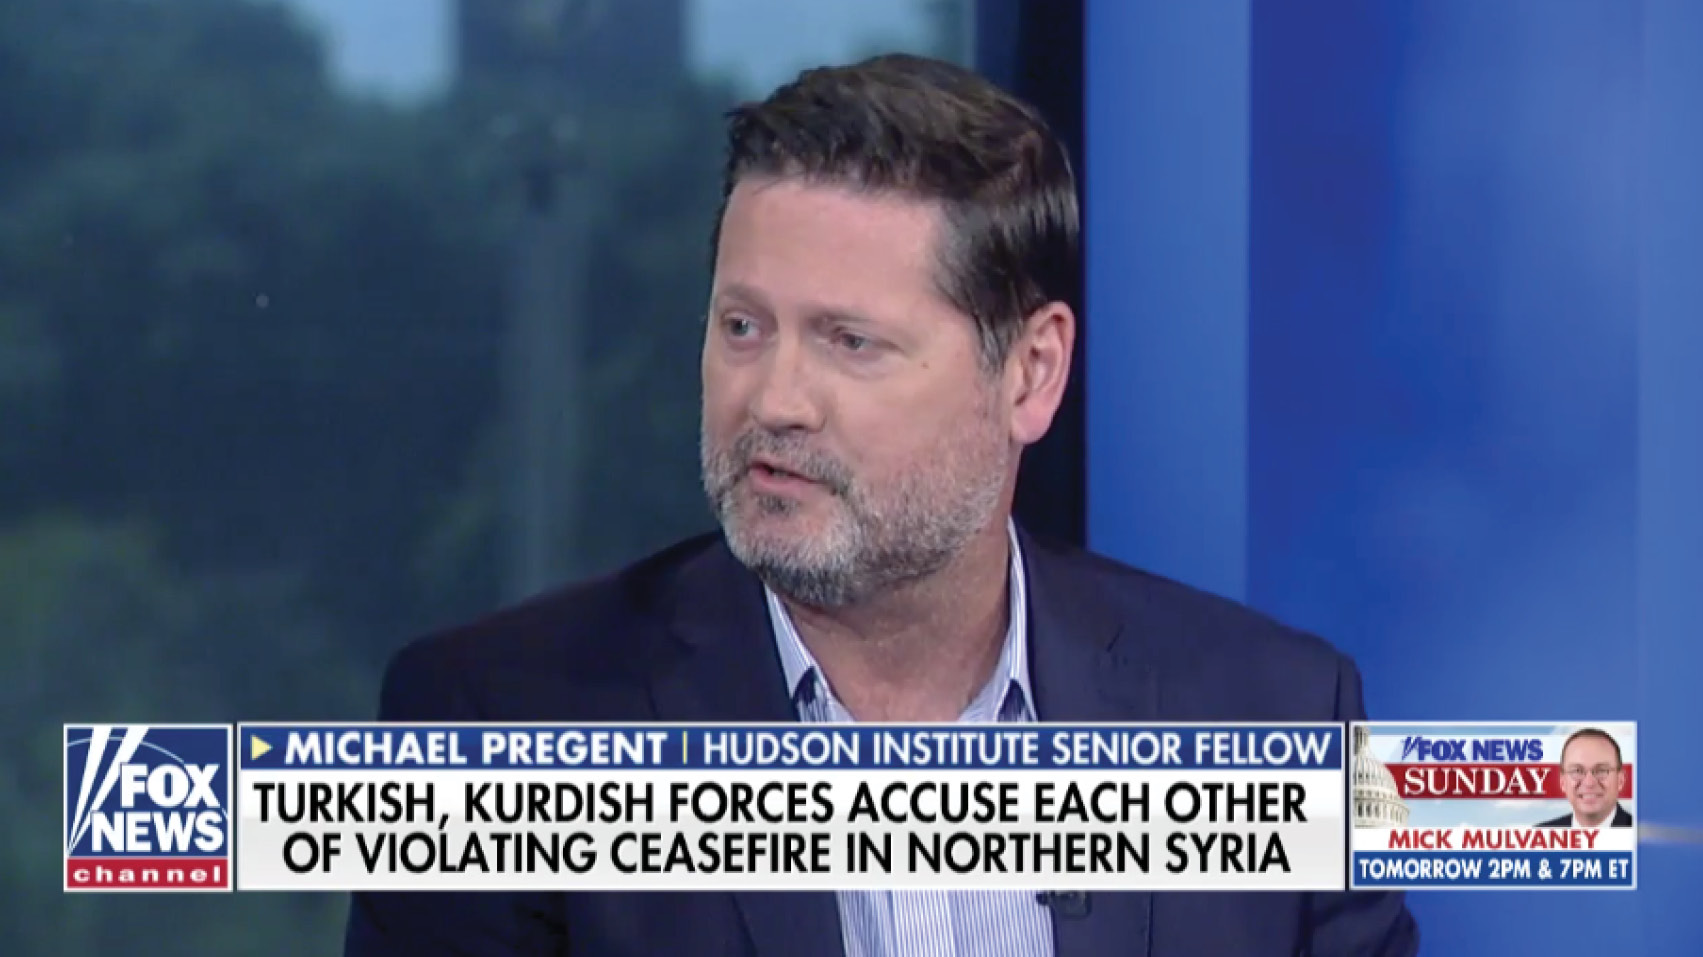 In an interview with Leland Vittert on Fox News, Michael Pregent discusses the Turkey cease-fire deal.